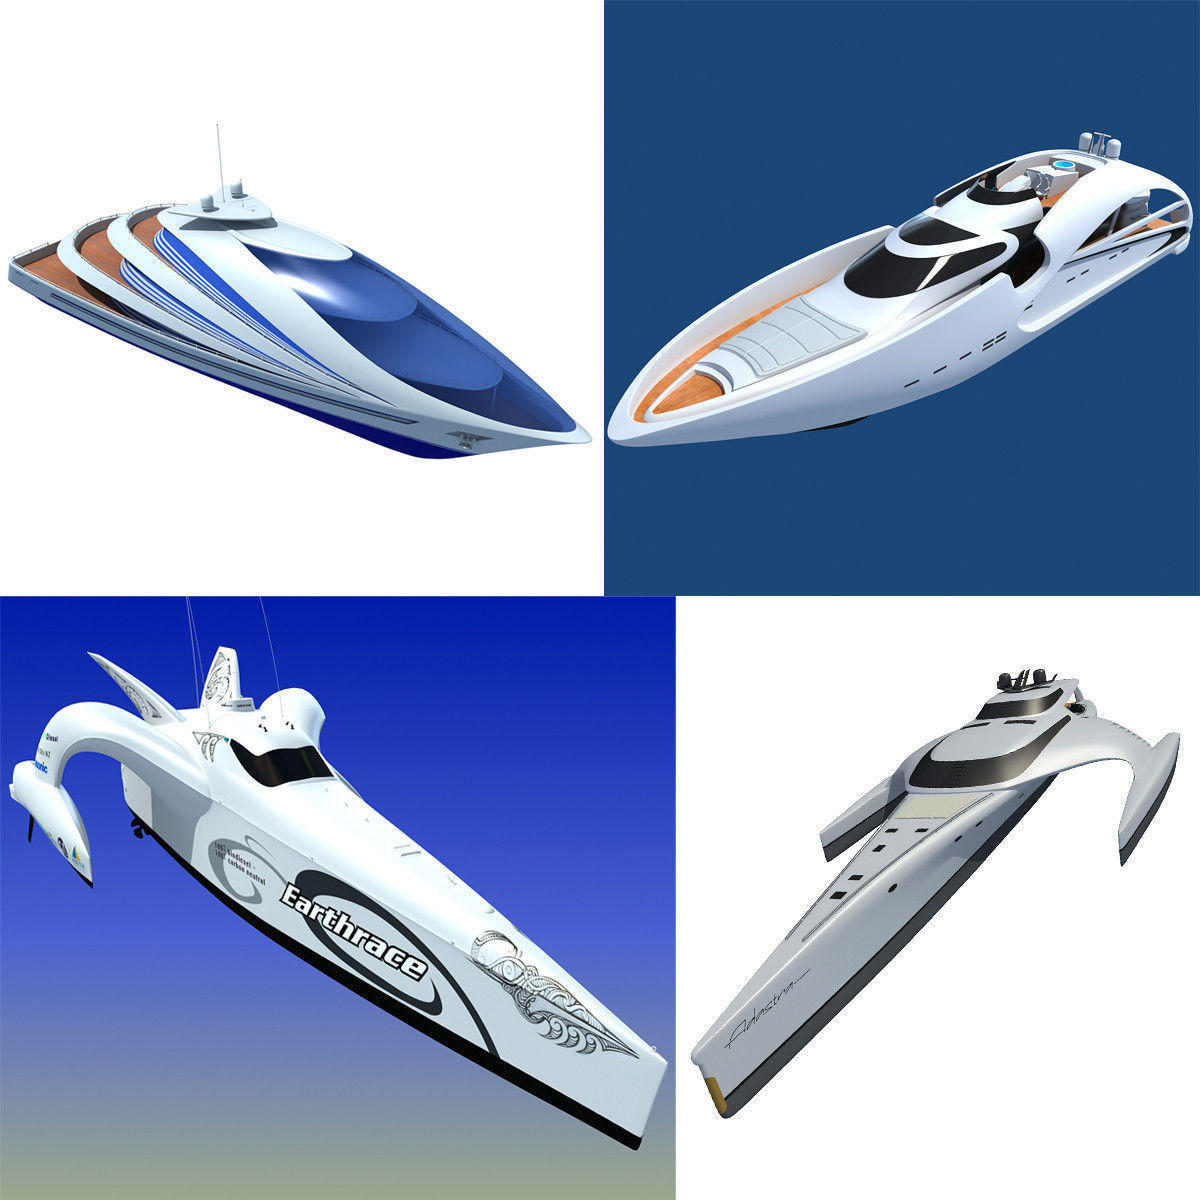 Collection of 4 Luxury Yachts